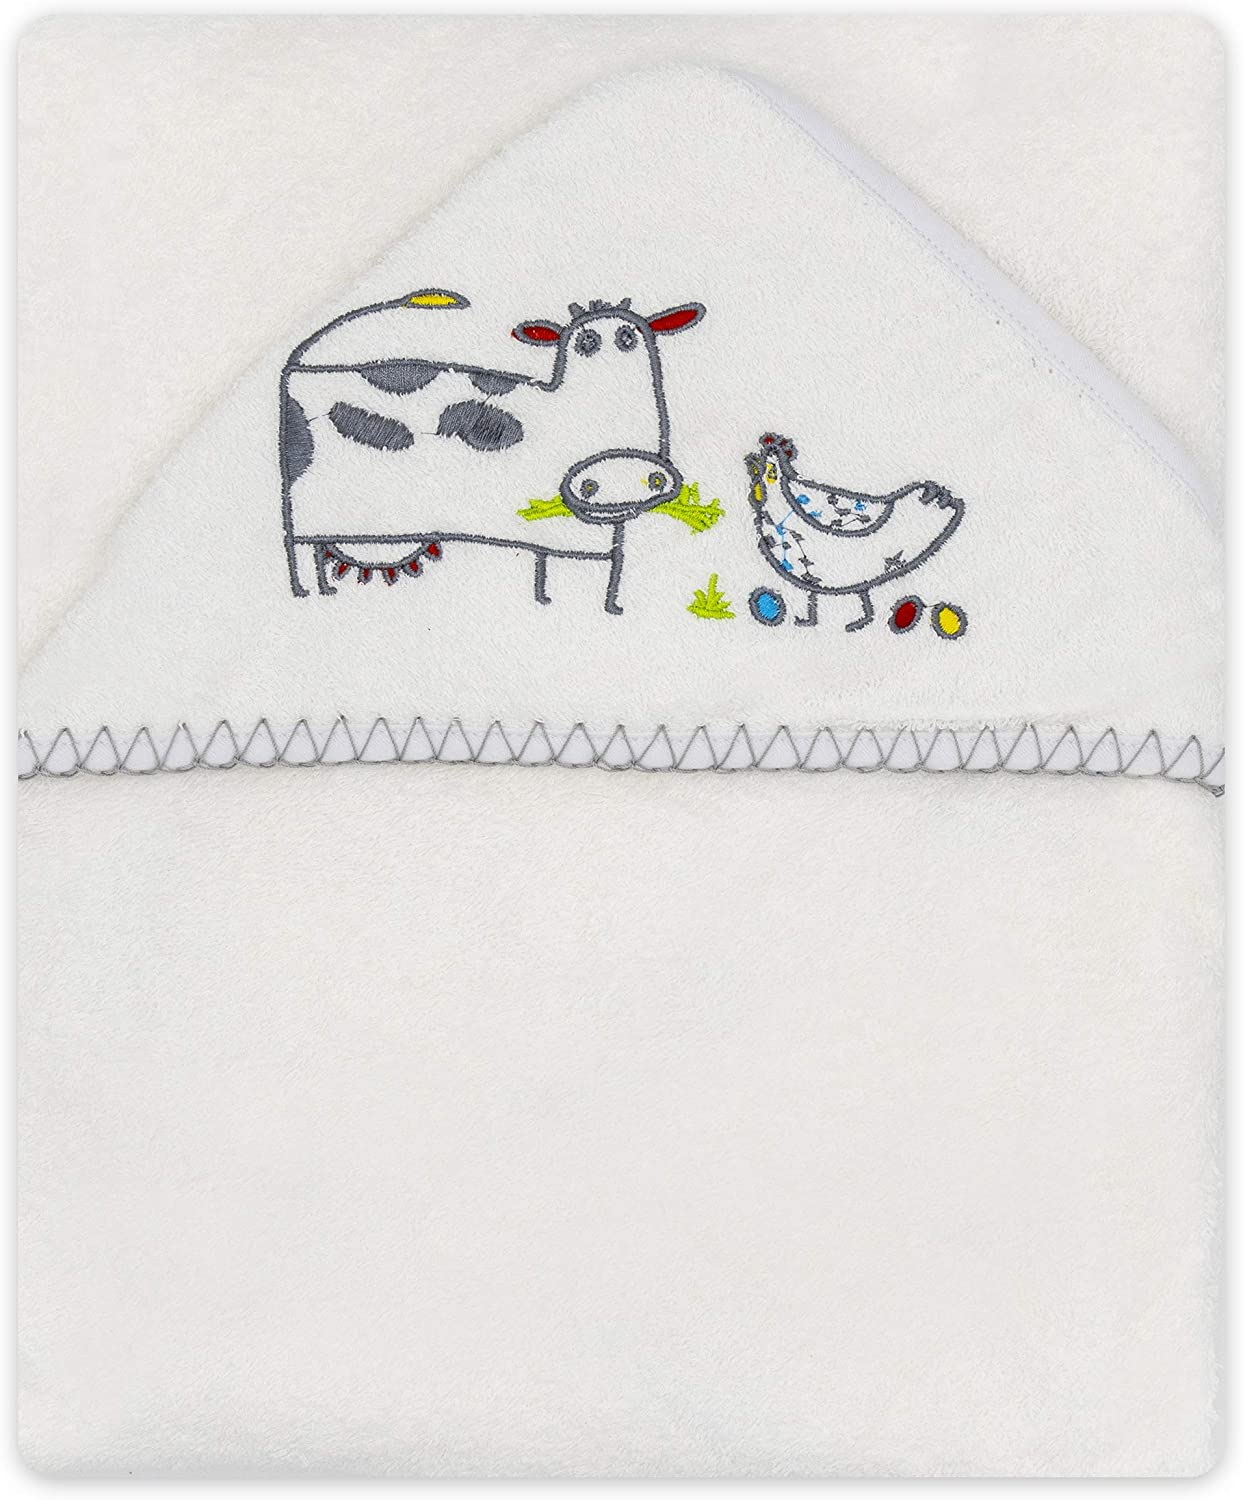 White Kids Poncho Bathrobe 95 x 95 cm BlueberryShop 100/% Cotton Hooded Baby Bath Towel Embroidered Patterns